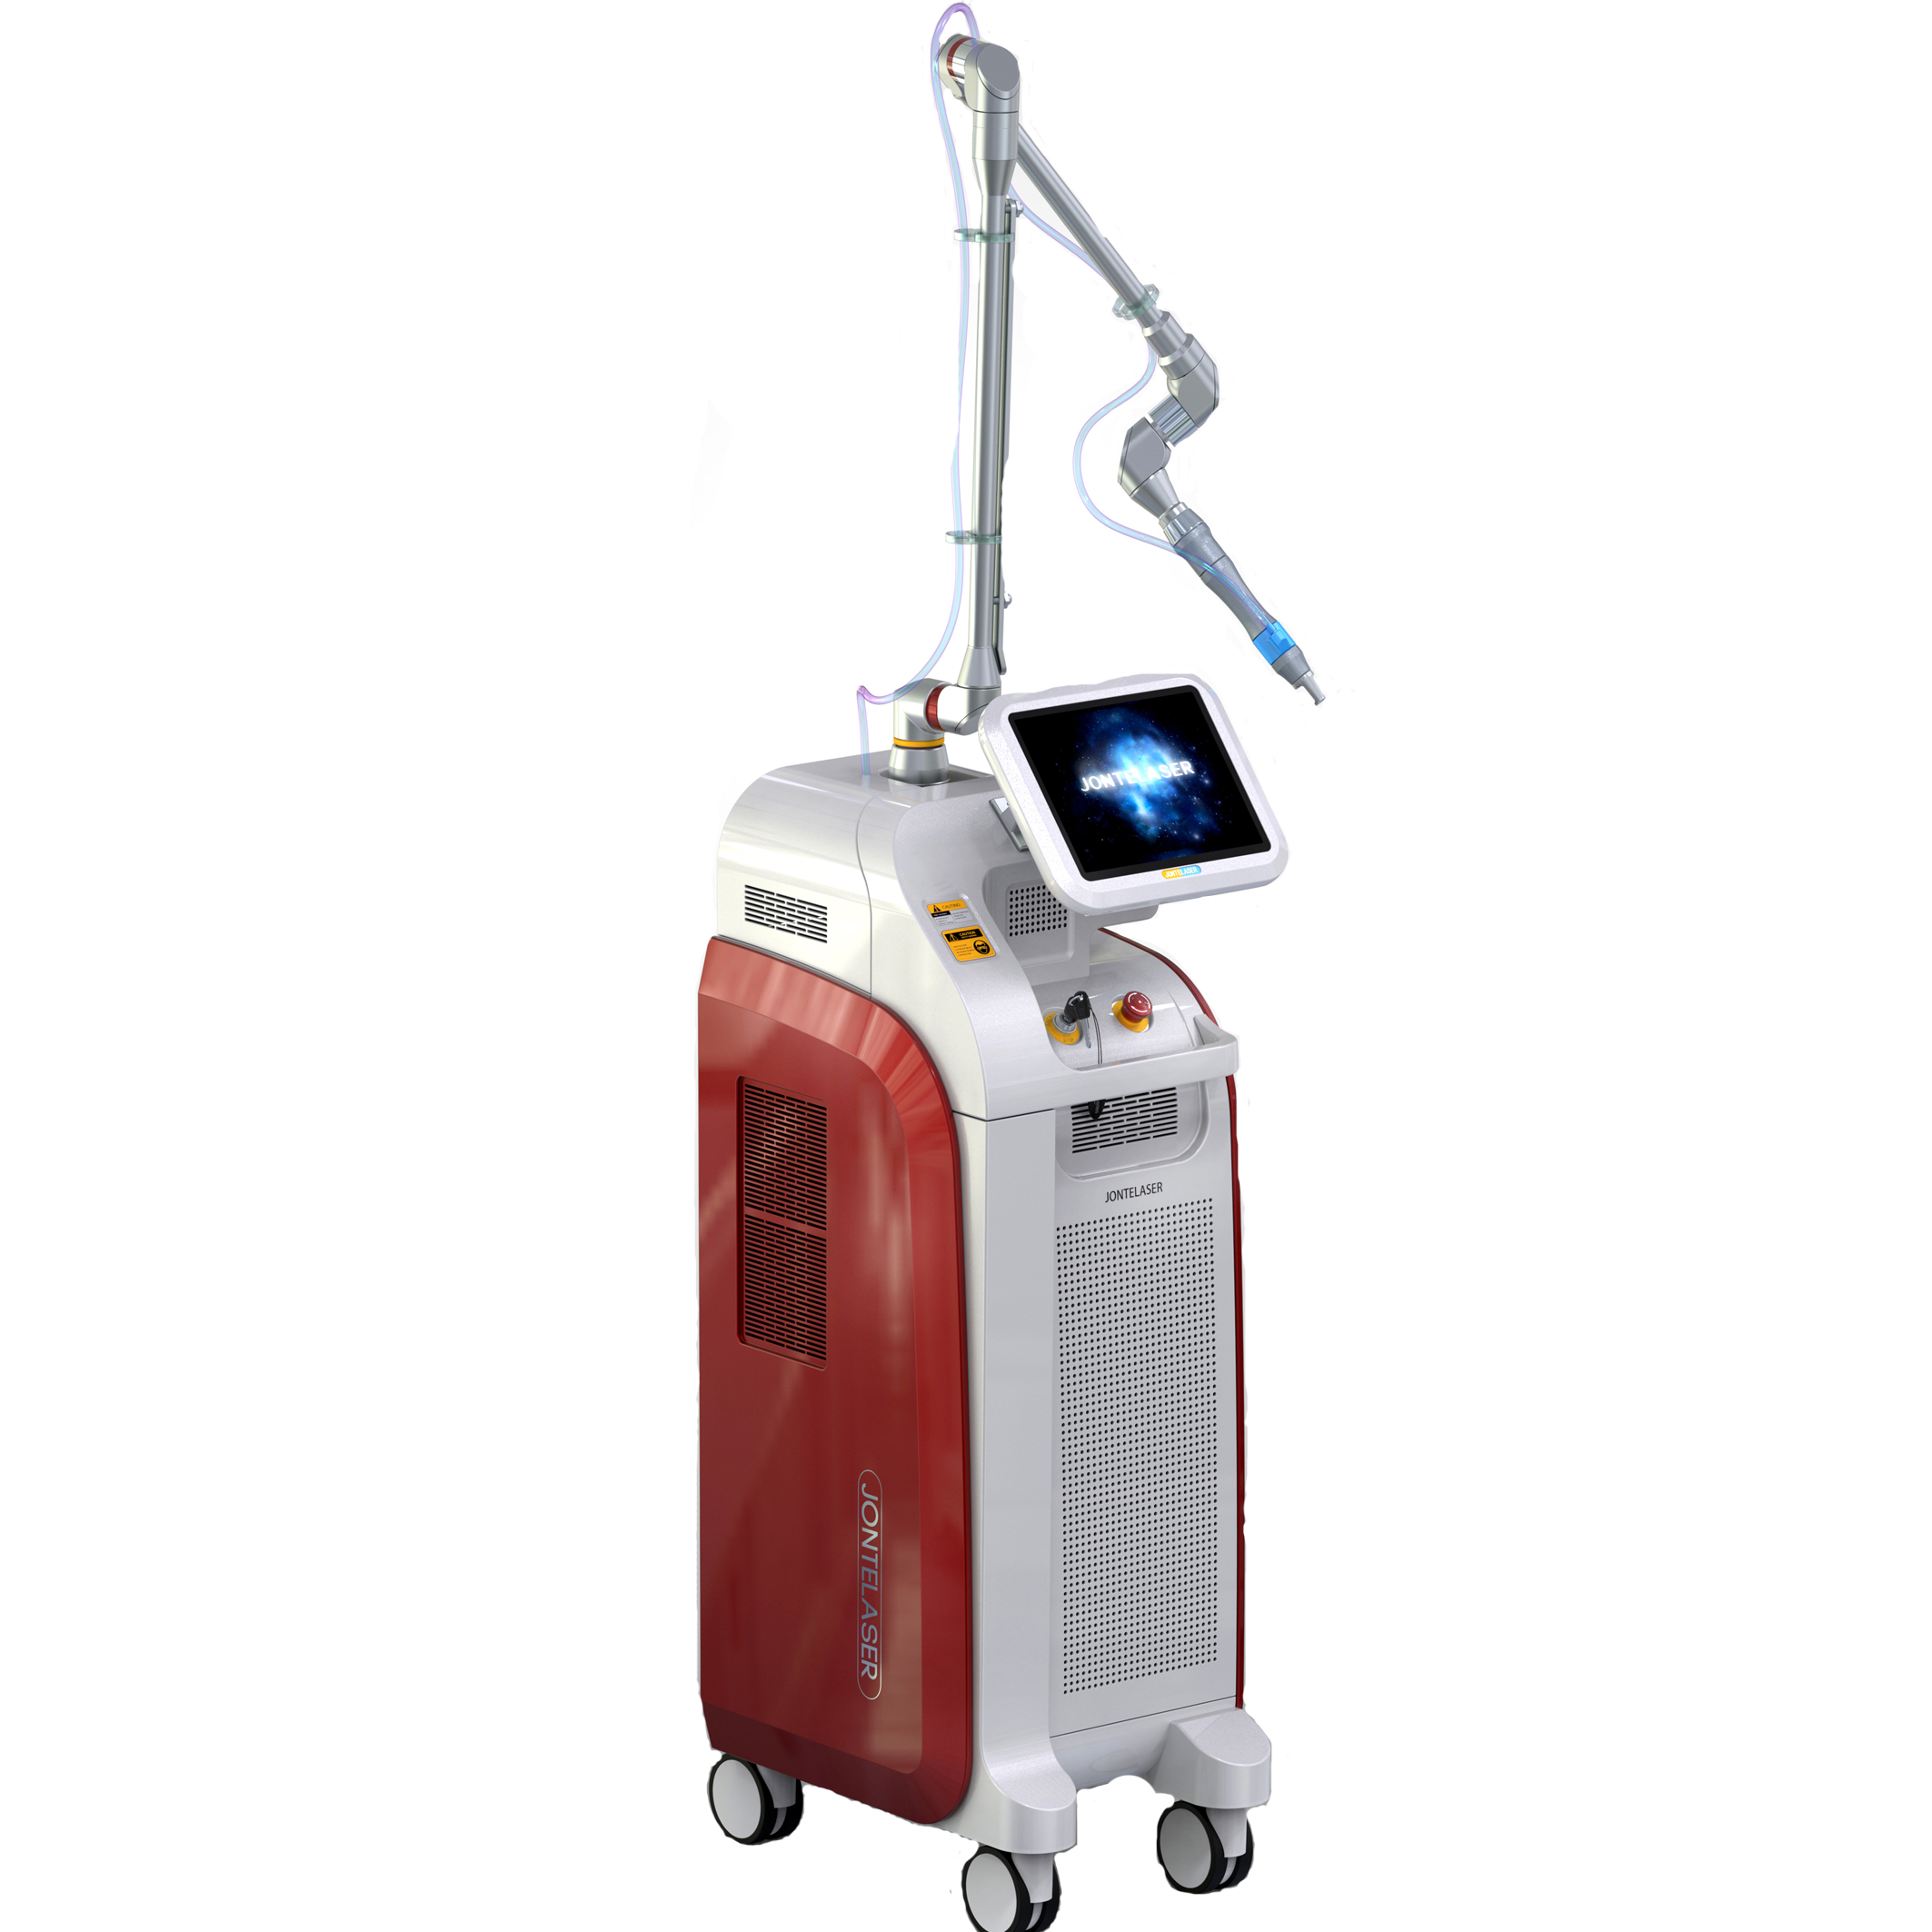 Grote power 50 W chirurgie snijden Fractionele co2 laser machine